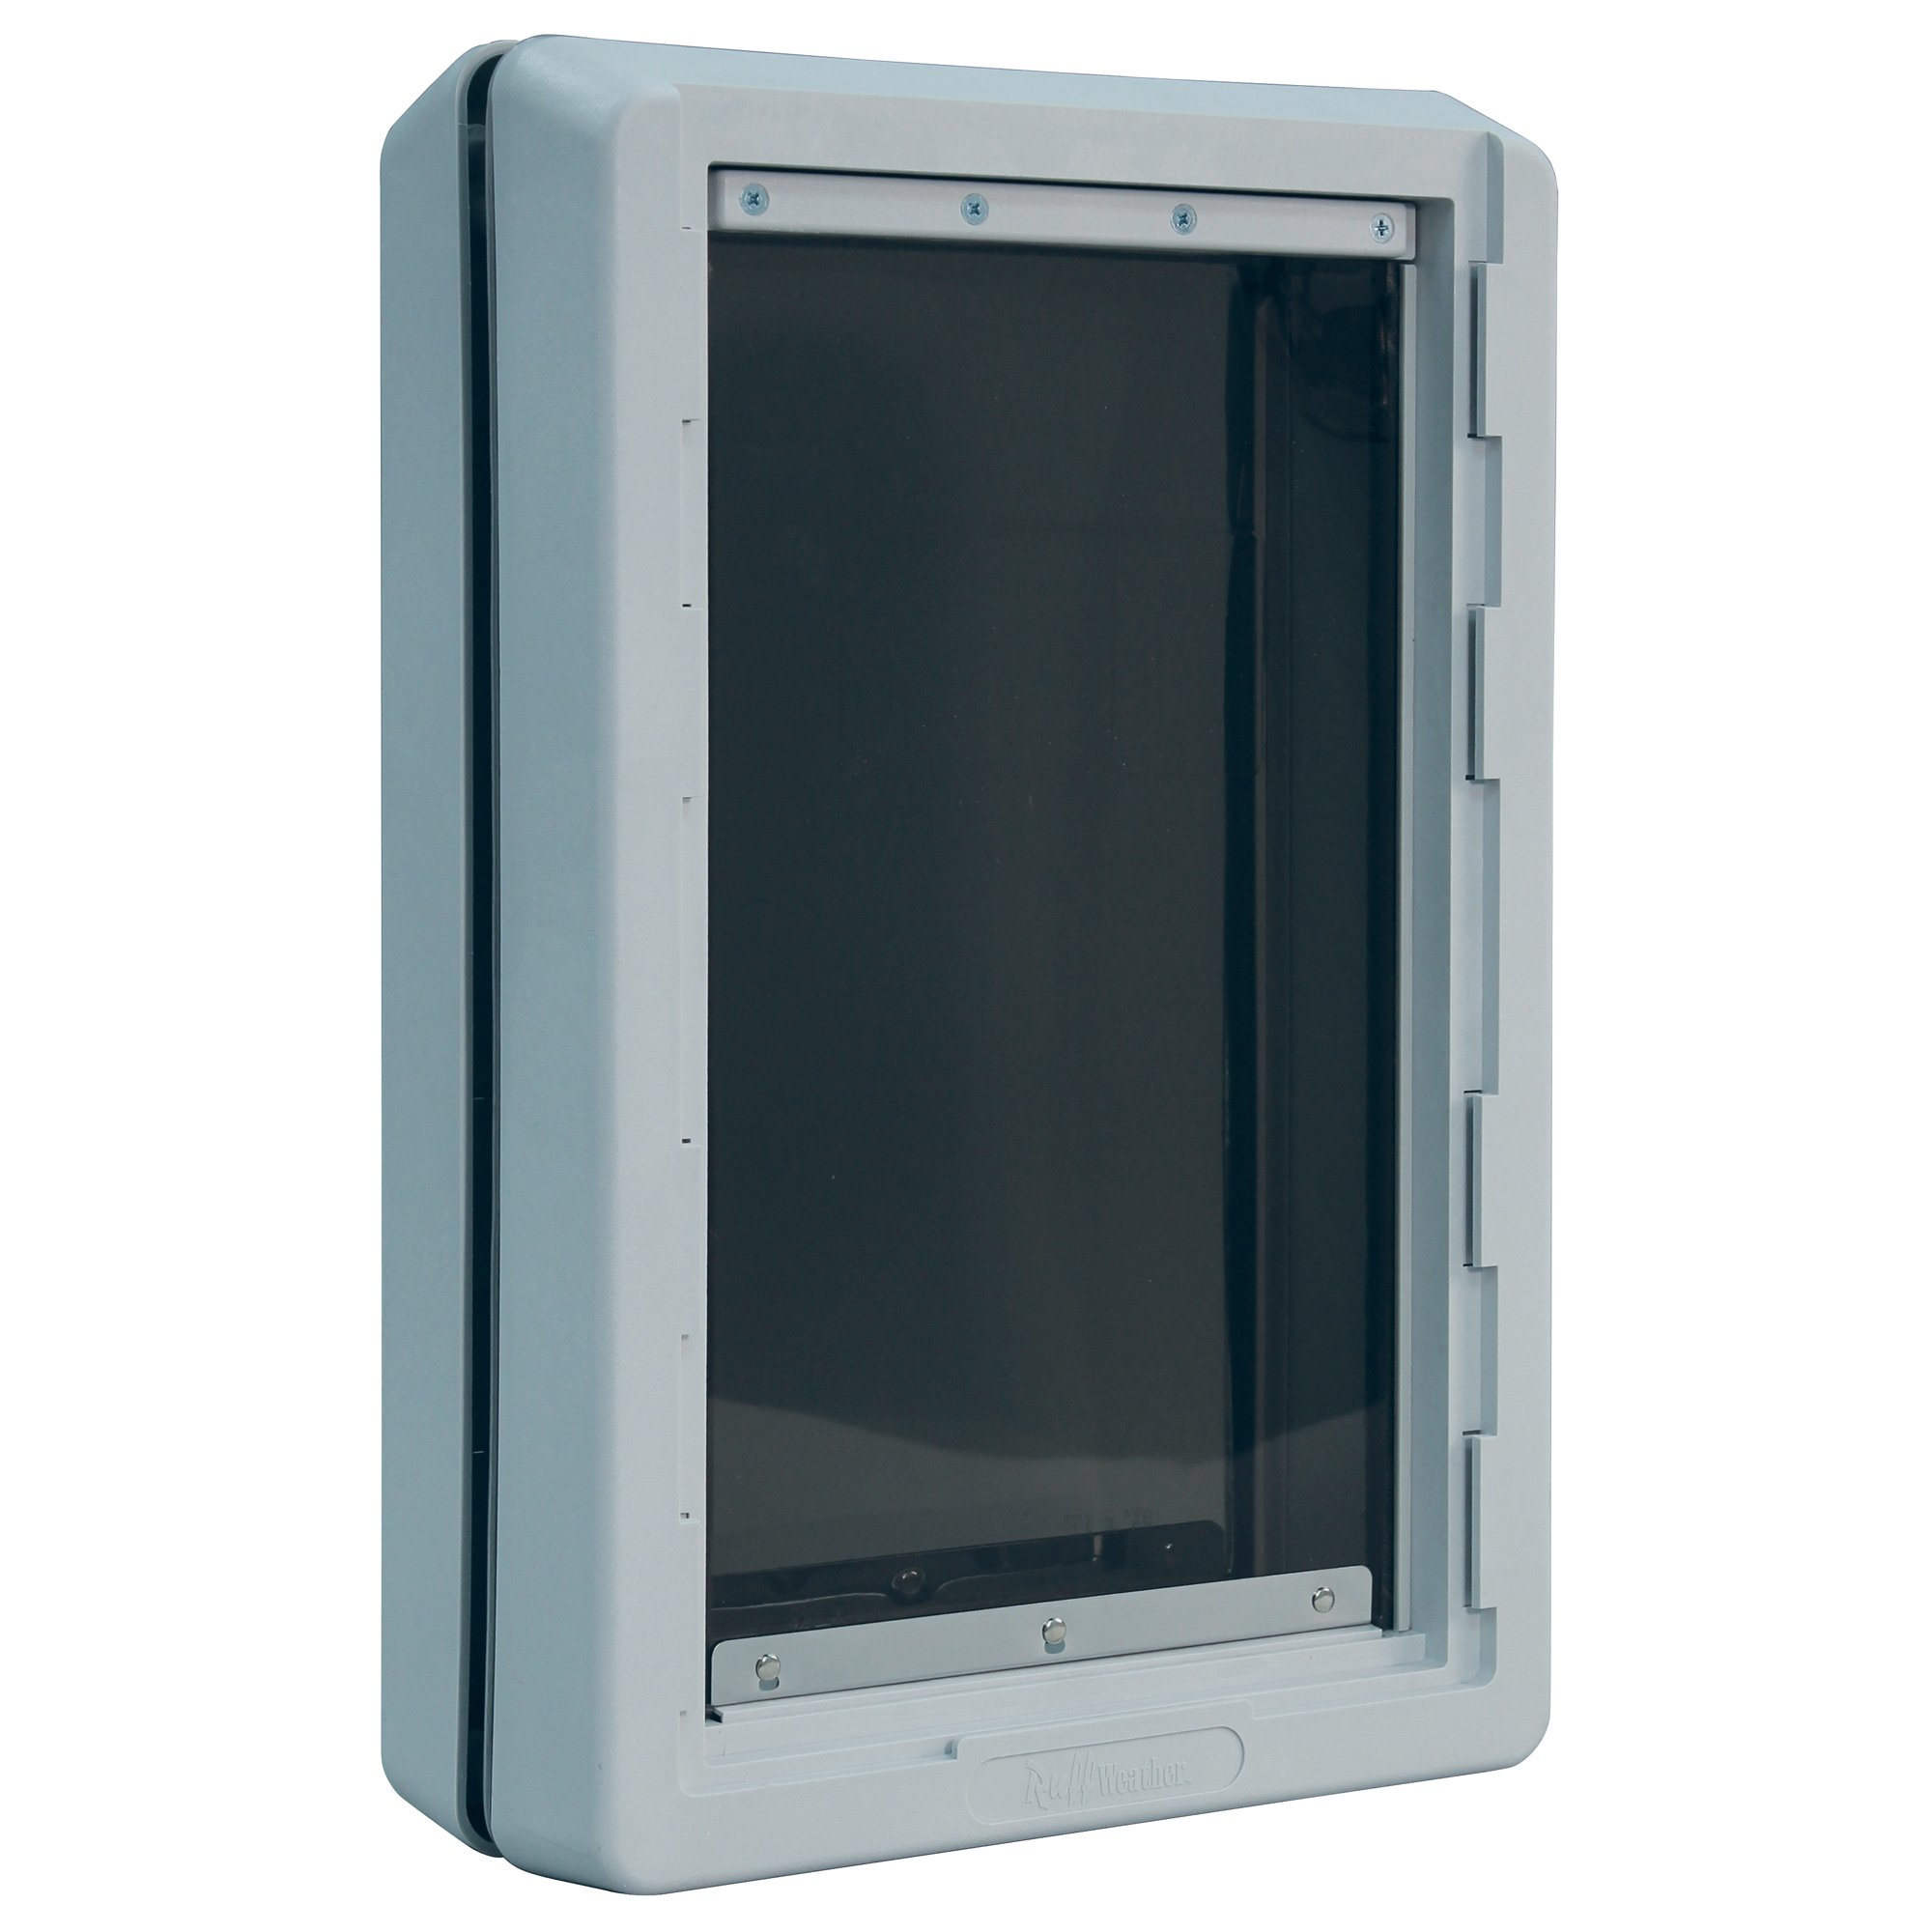 Ideal Pet Products Designer Series Ruff-Weather Pet Door with Telescoping Frame, Extra Large, 9.75'' x 17'''' Flap Size